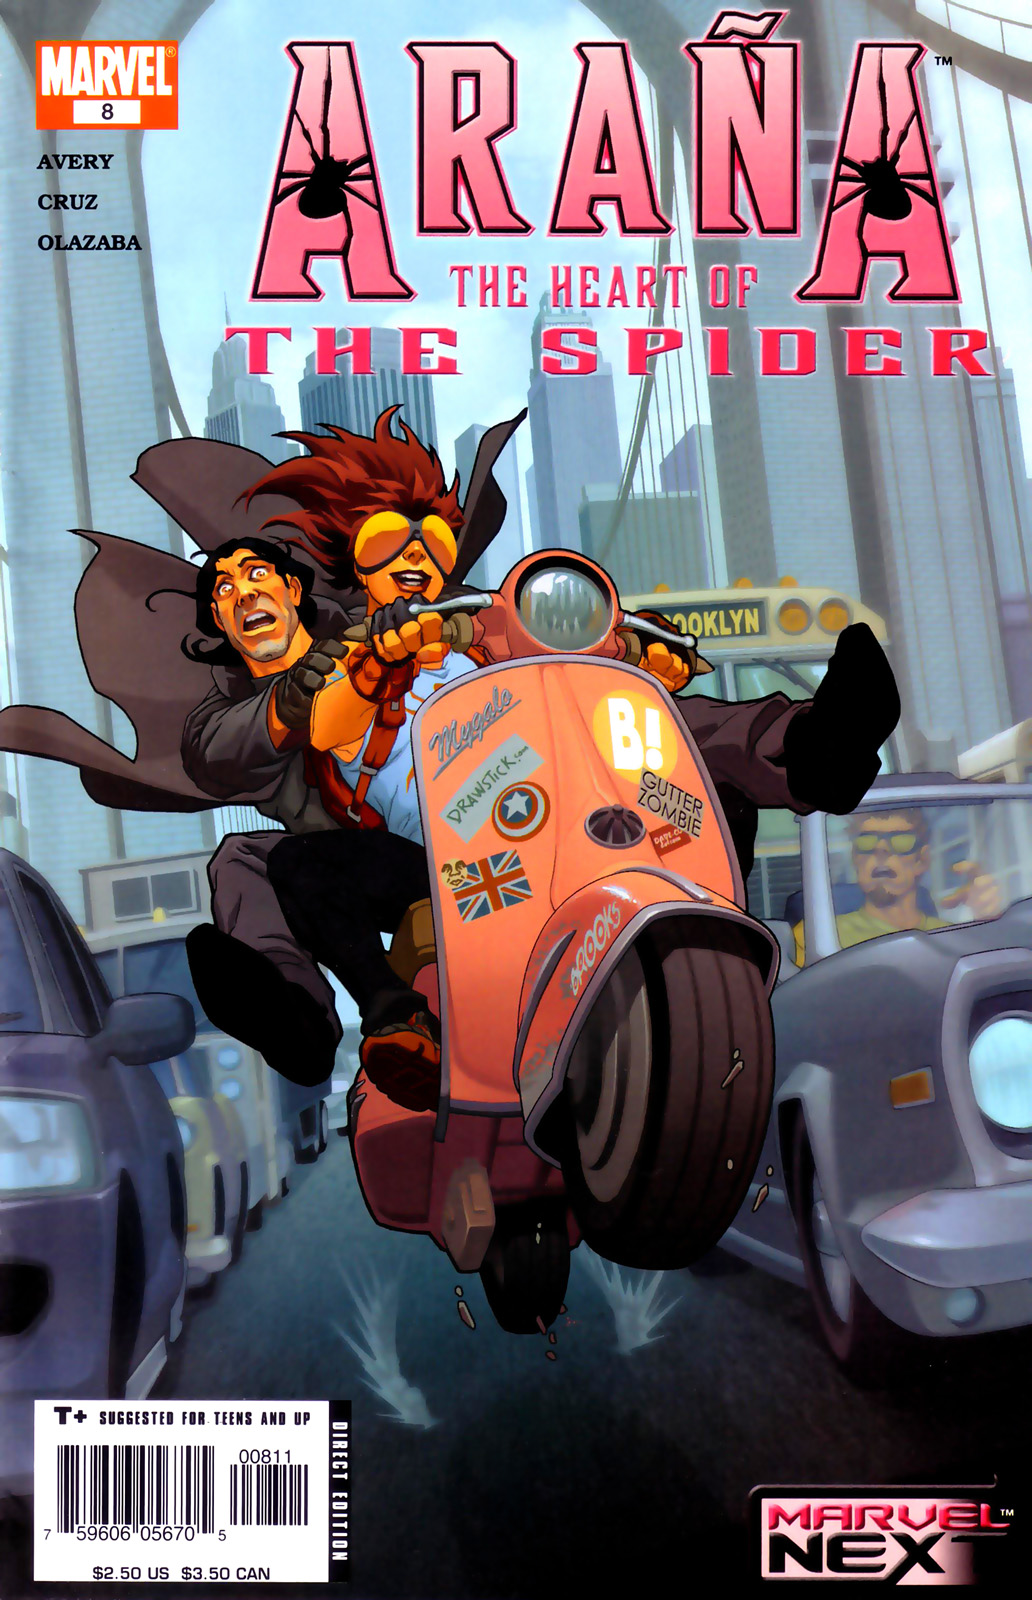 Read online Araña: Heart of the Spider comic -  Issue #8 - 1